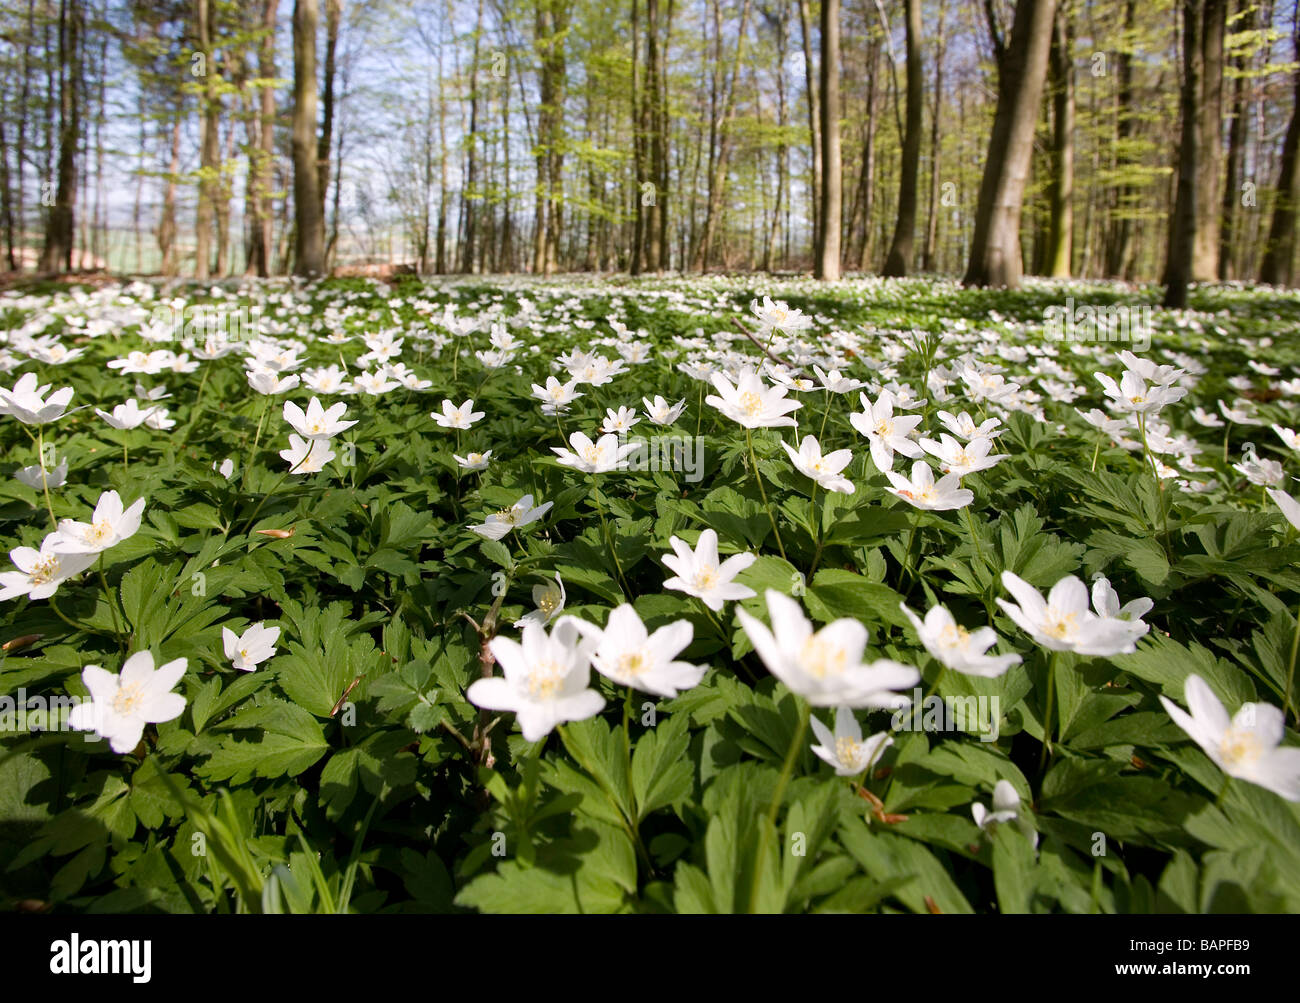 Countless wood anemones (Anemone nemorosa) in a deciduous forest in the spring Stock Photo